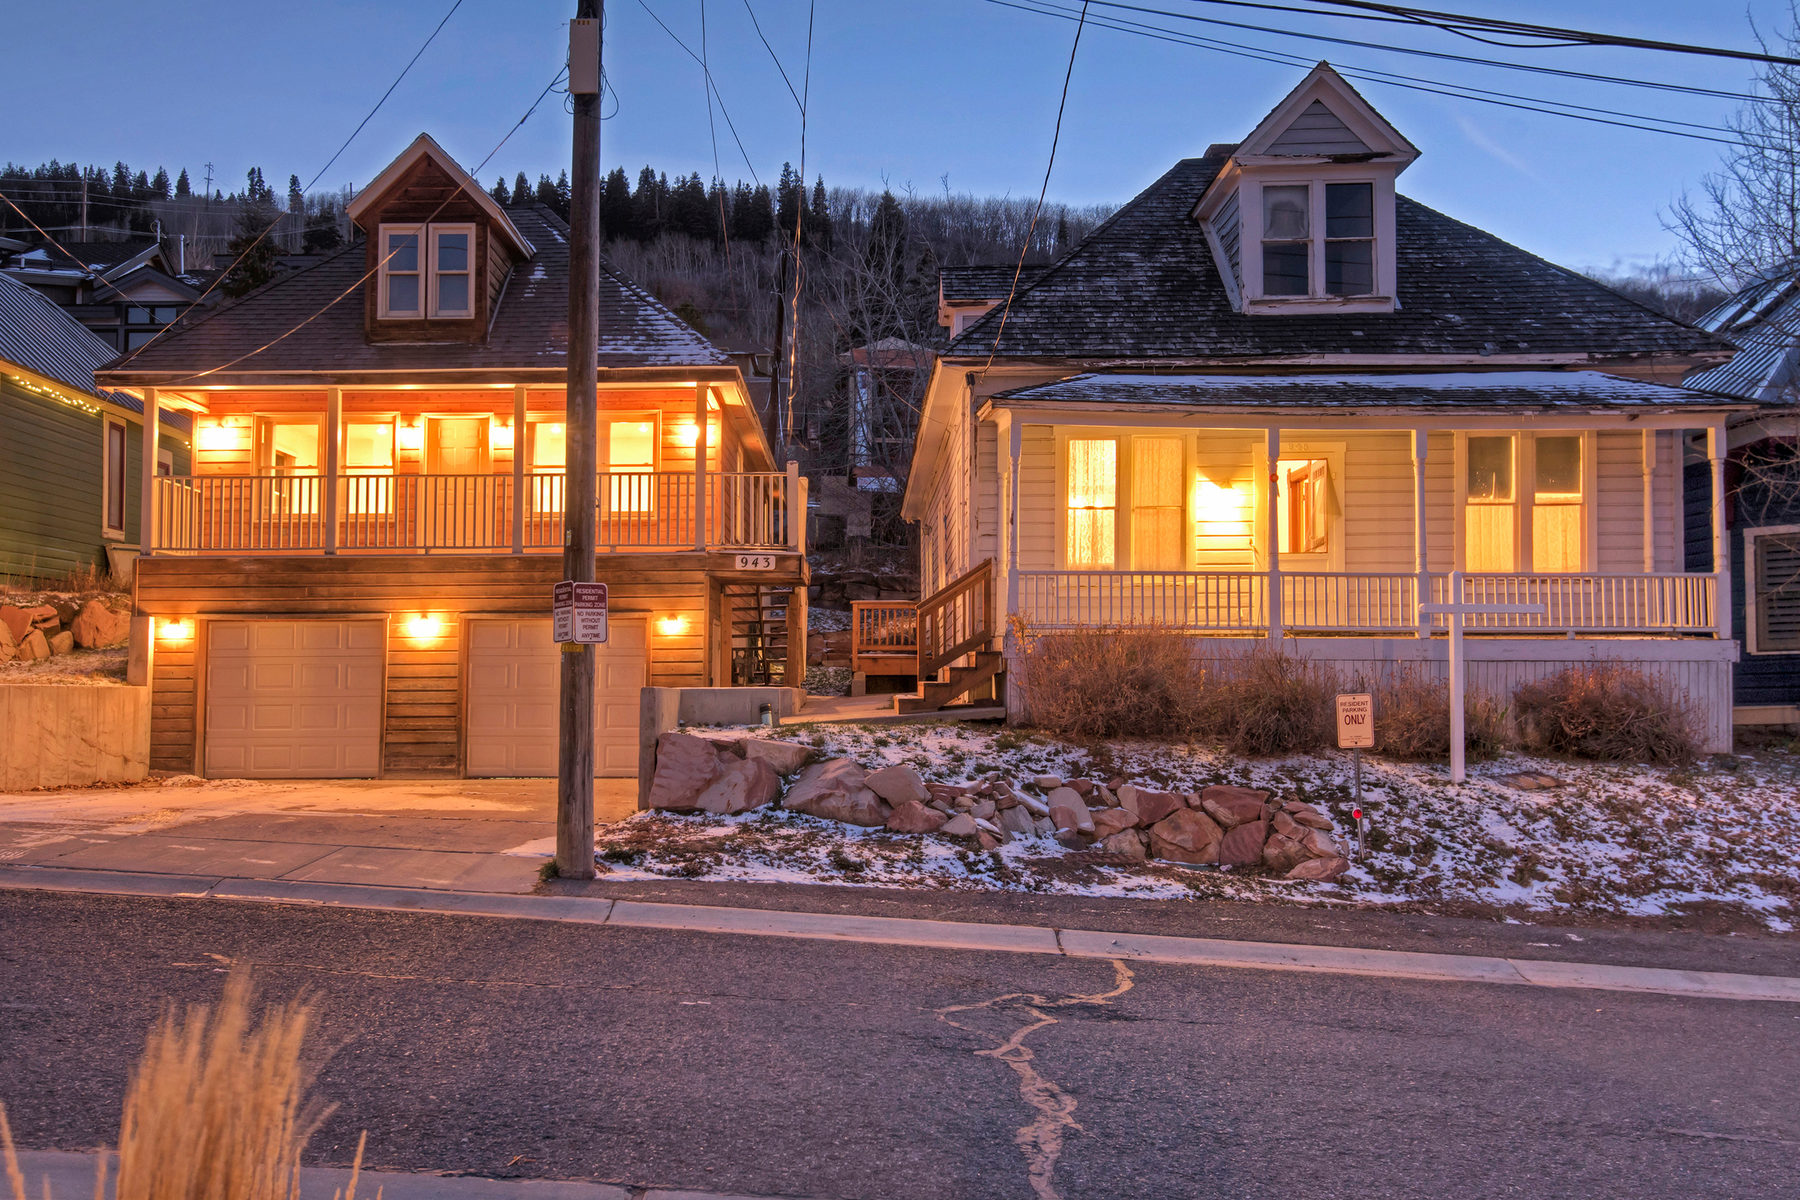 Single Family Home for Sale at The Gardner Parcel - The Ultimate Old Town Development Opportunity! 945, 943 Norfolk Ave Park City, Utah, 84060 United States